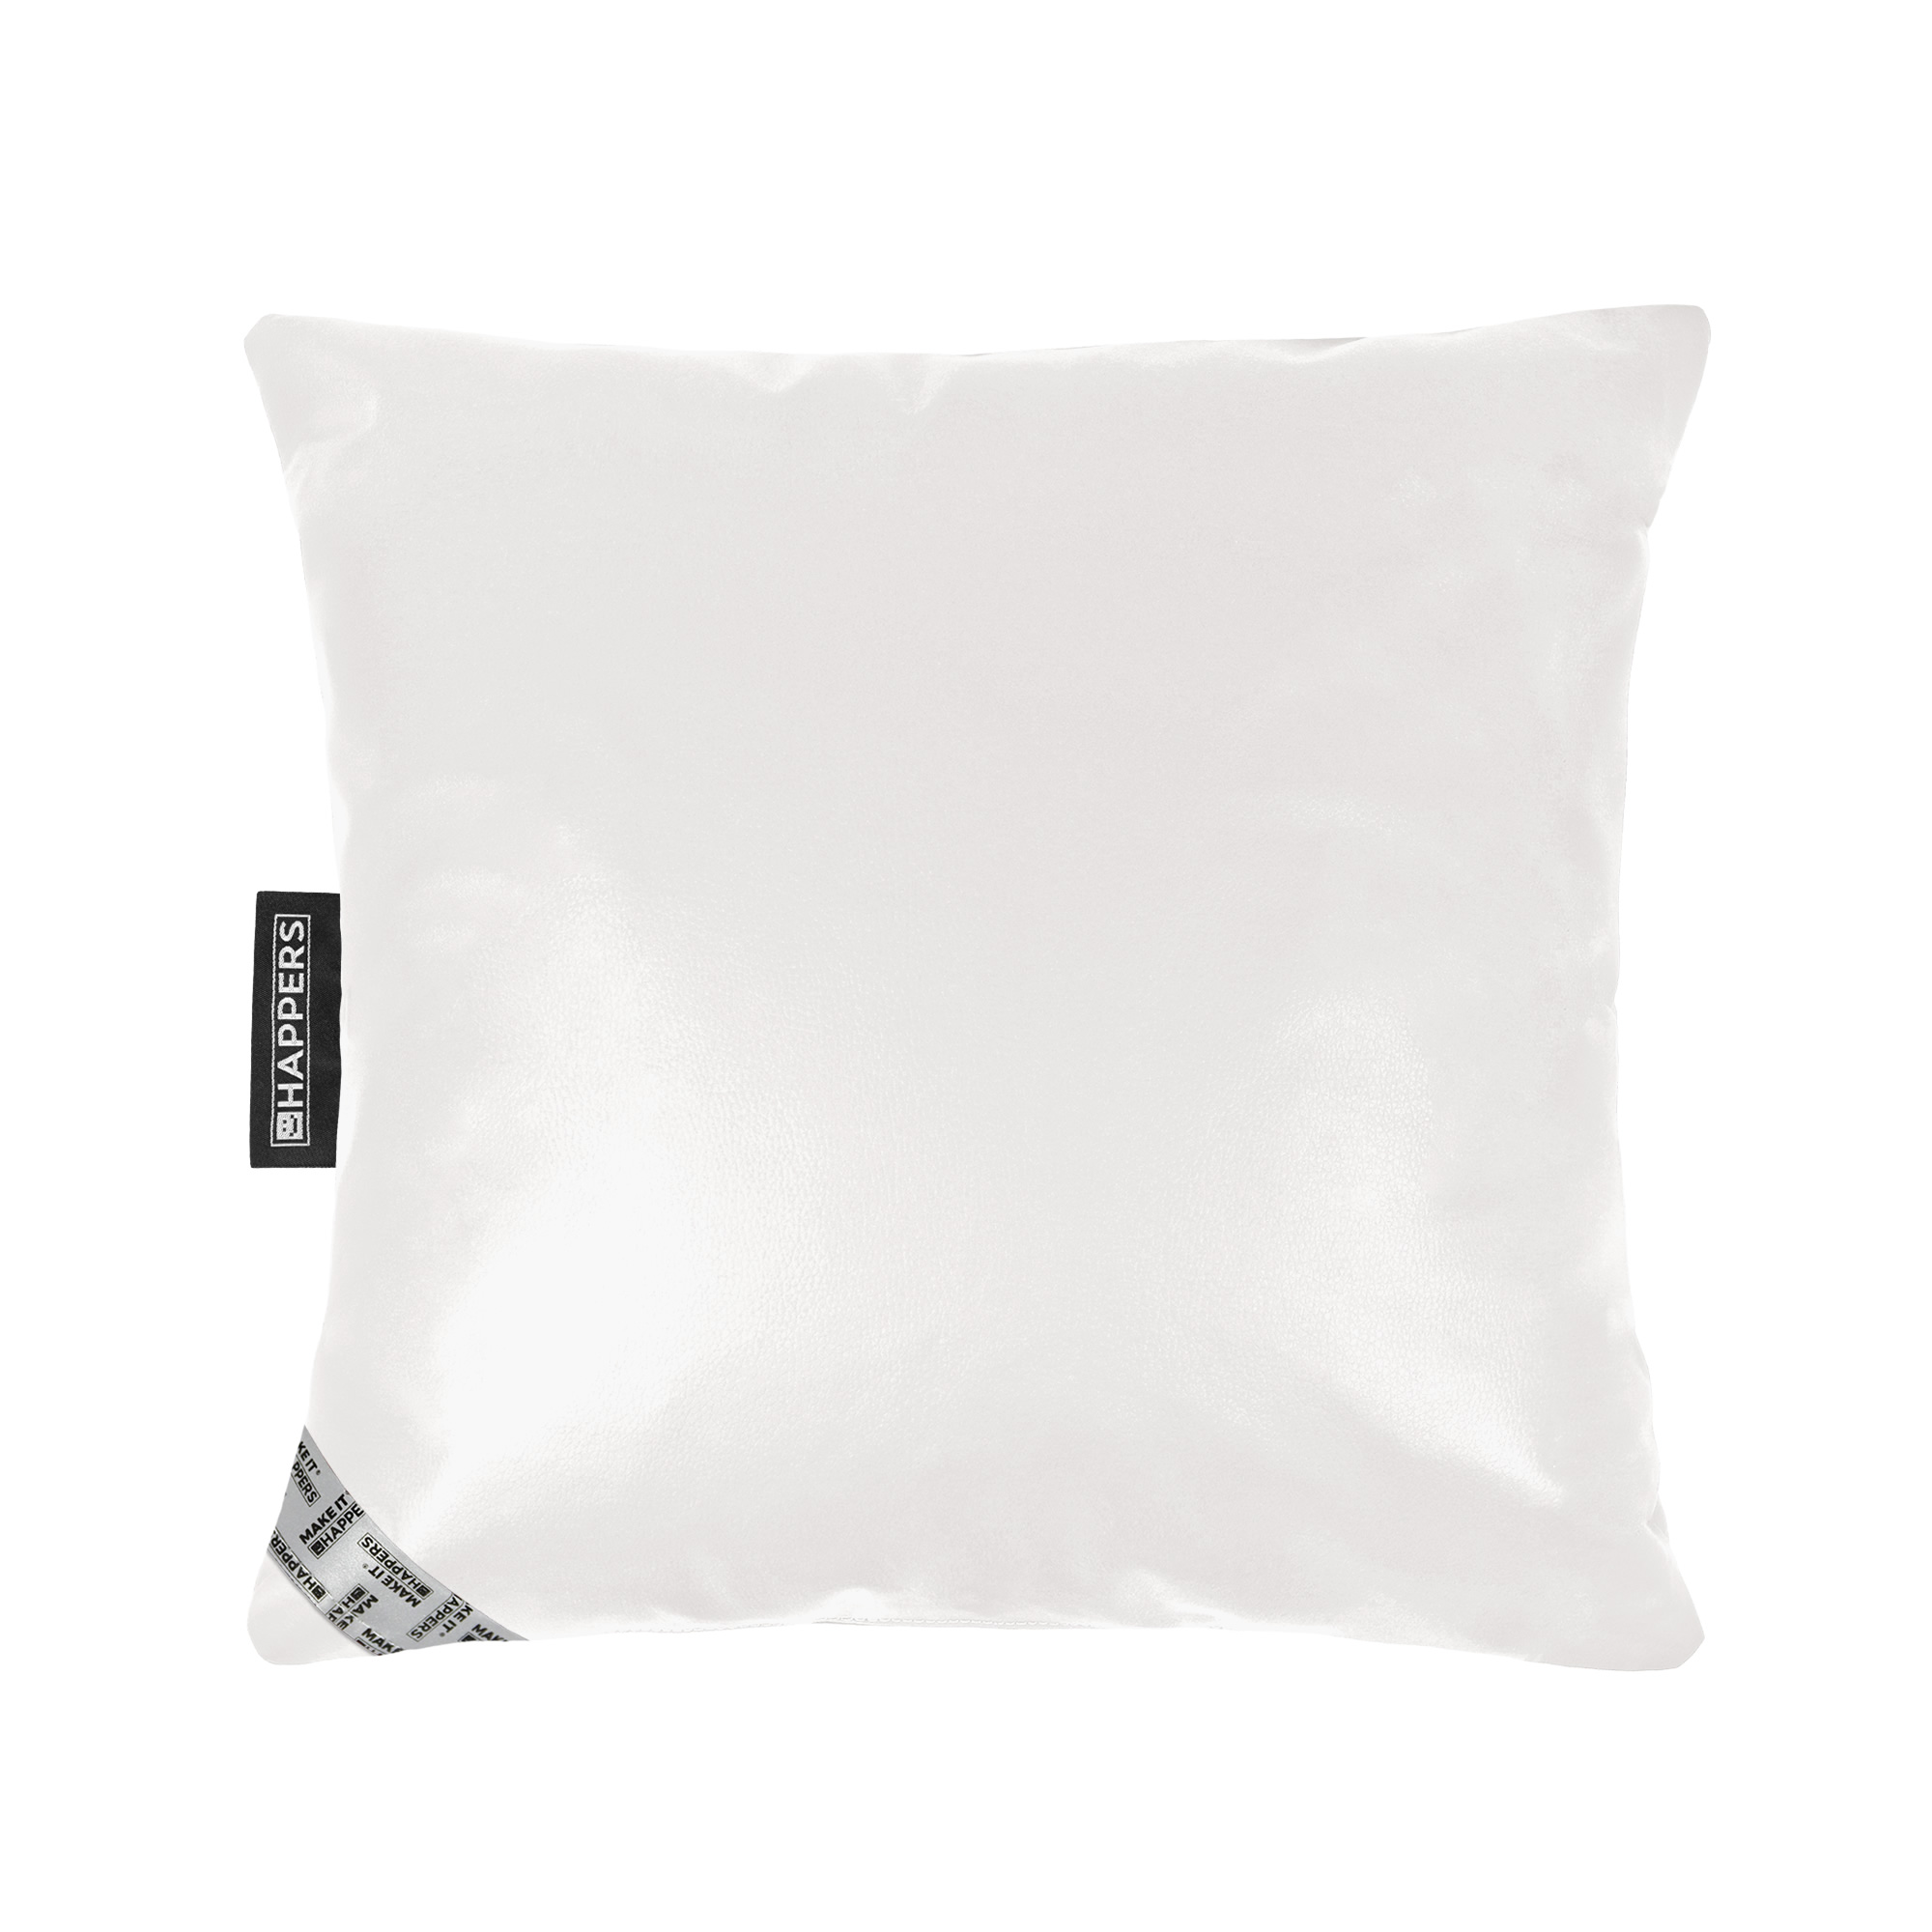 Cojín 45x45 Polipiel Indoor Blanco Happers | Happers.es